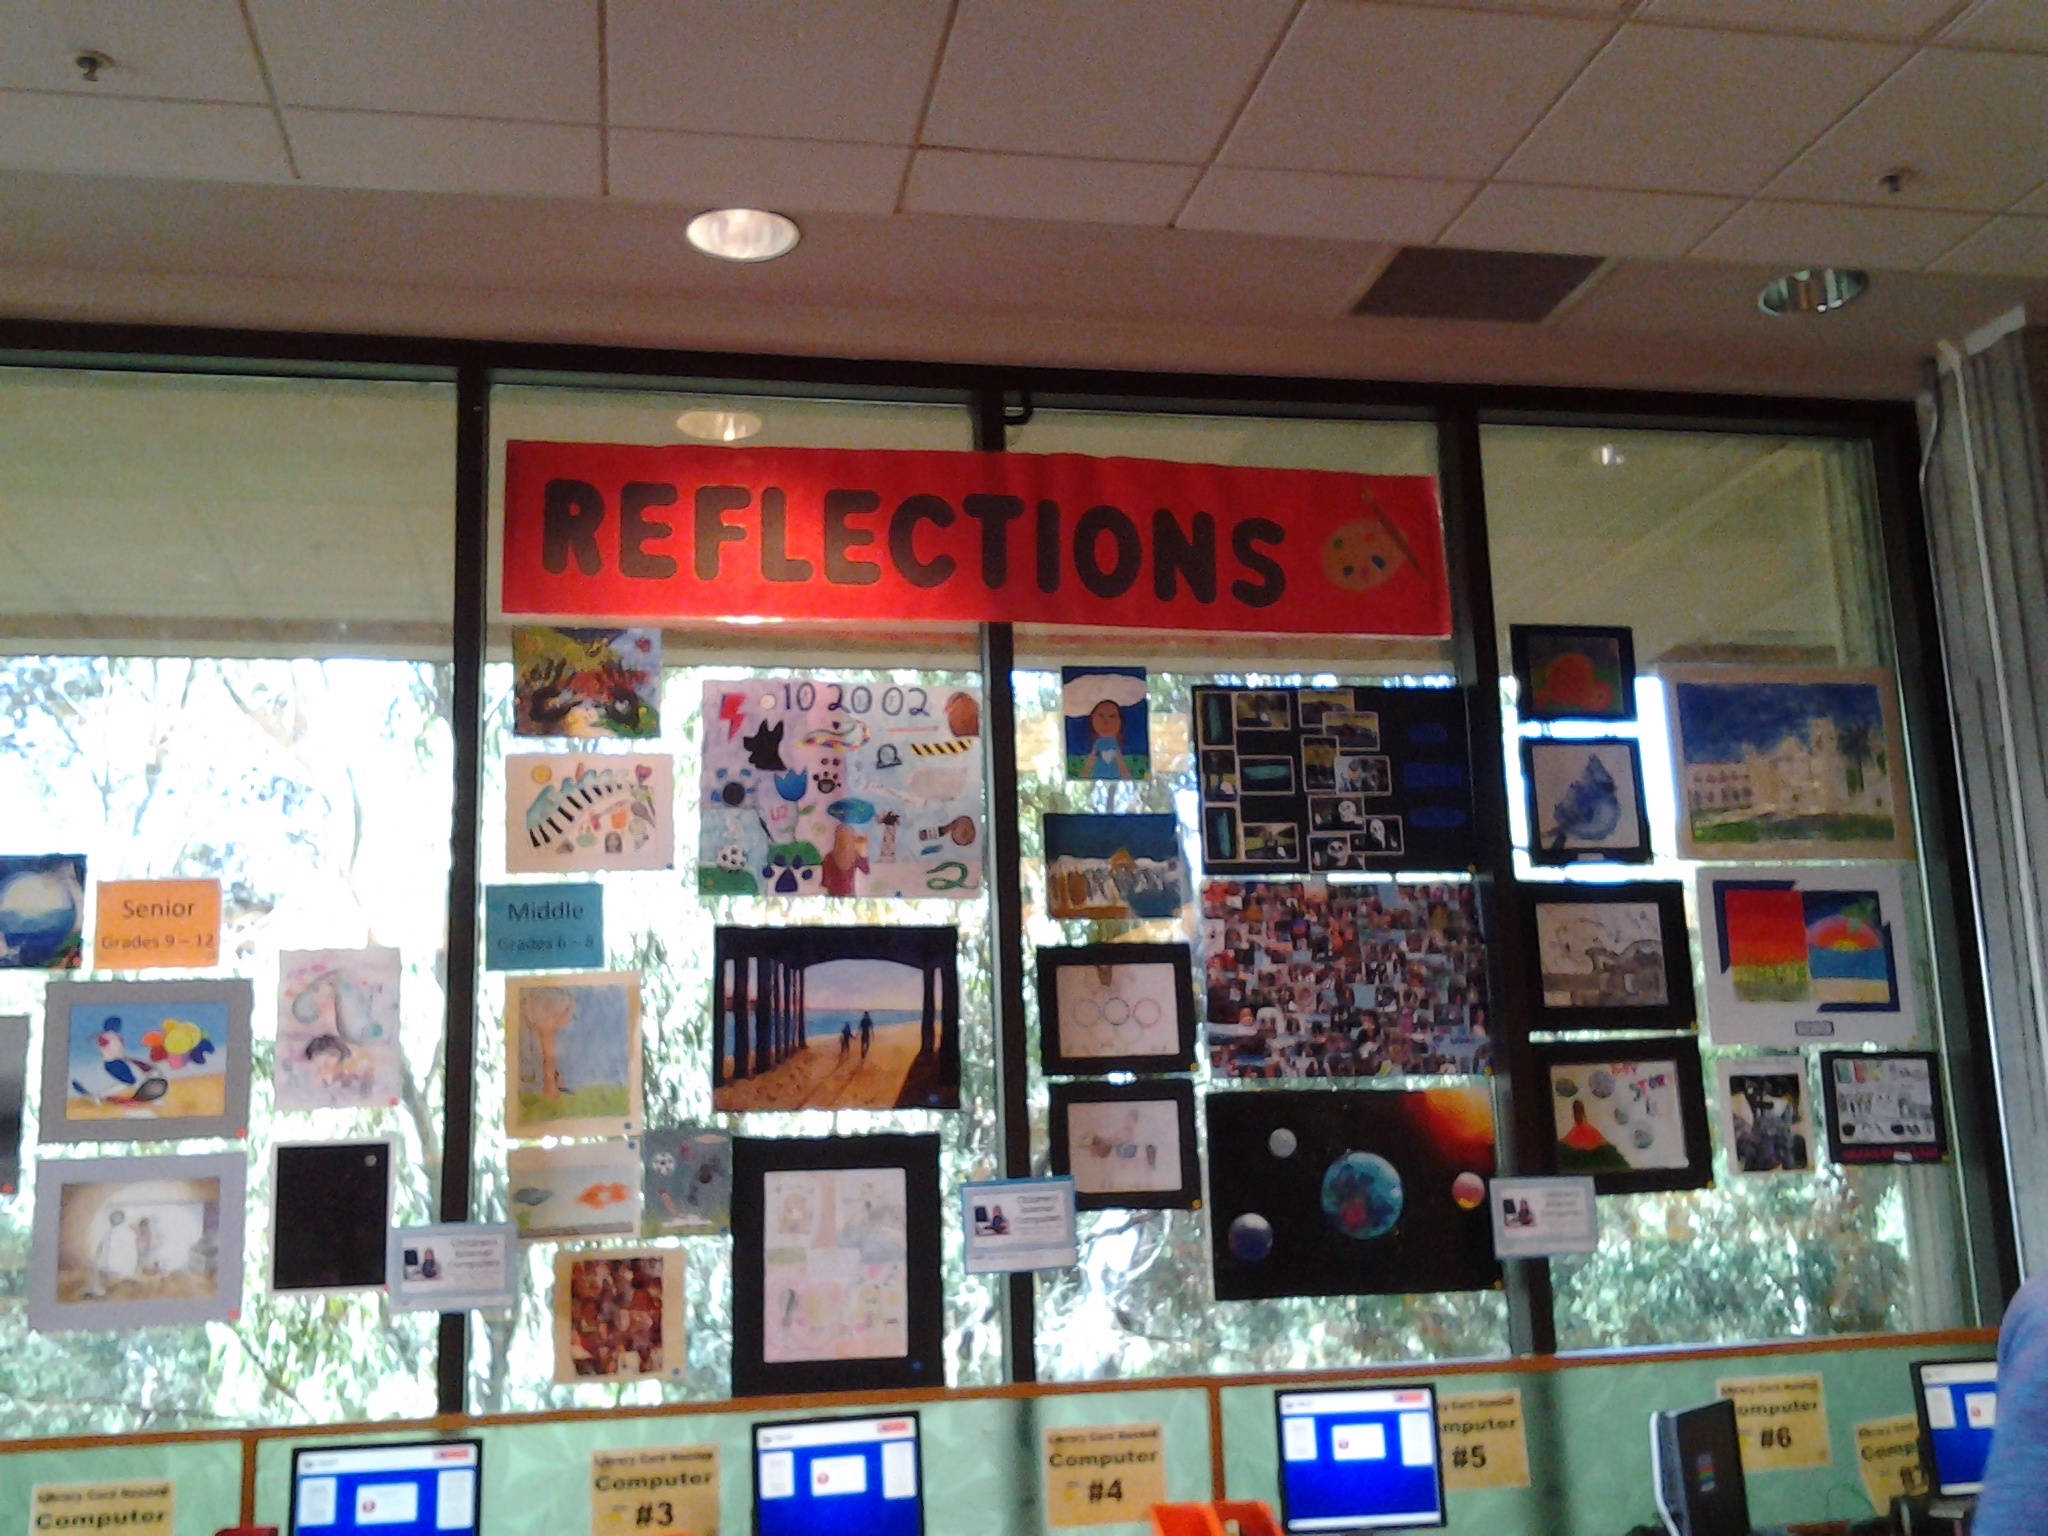 Reflections Entries on Display